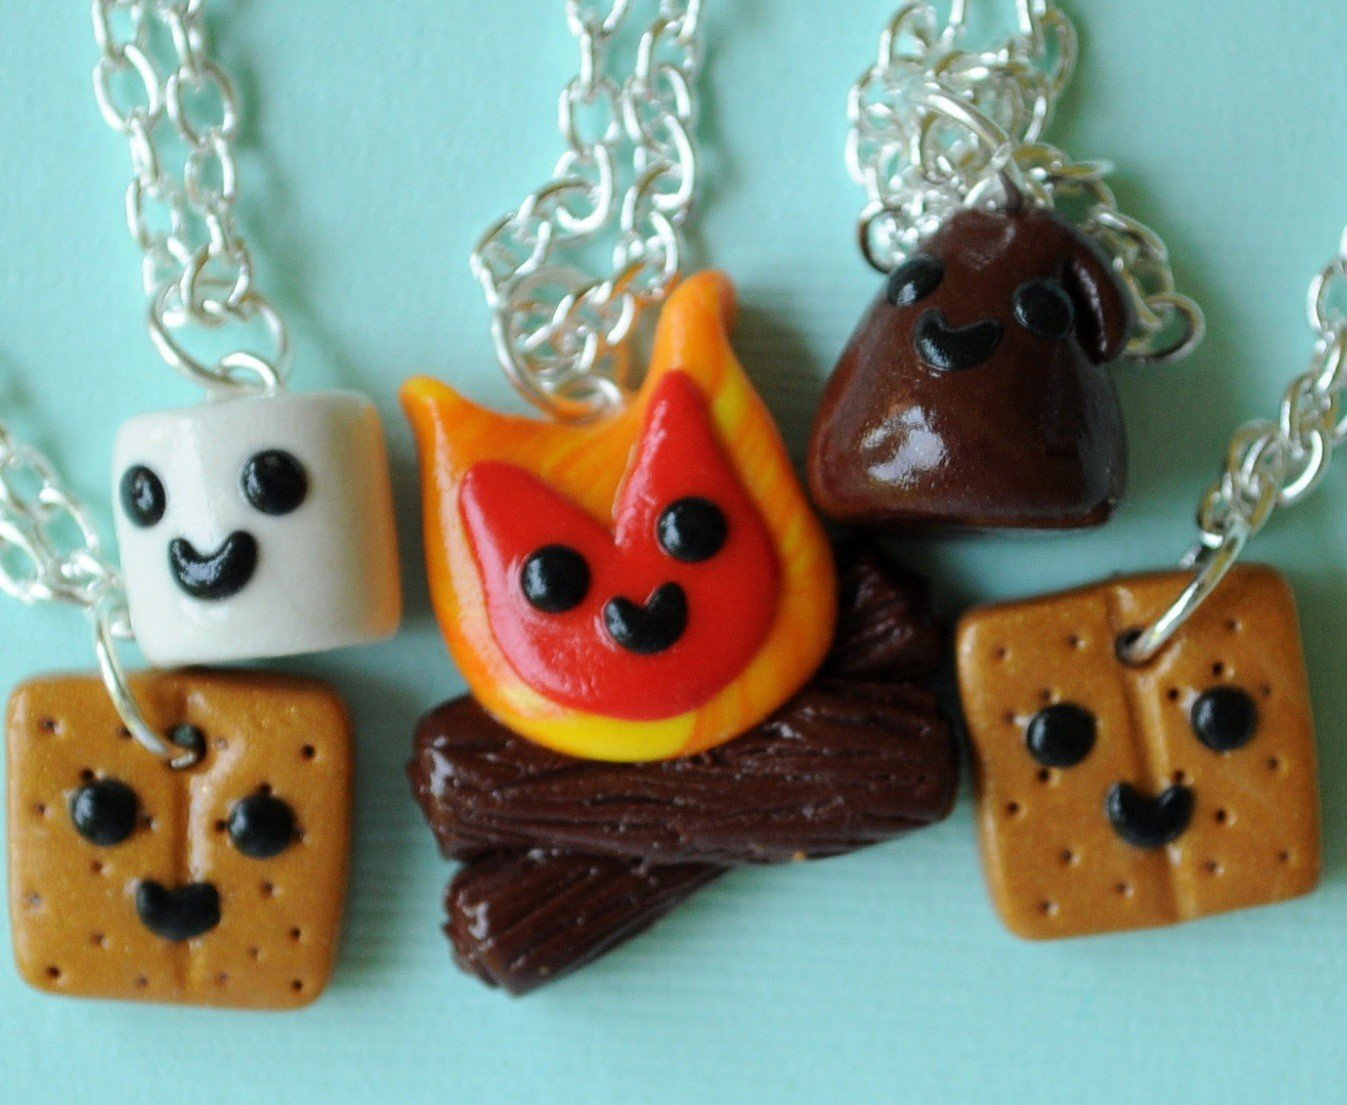 Amazon.com: Handmade S'Mores and Campfire Five-Way Best Friend Necklaces